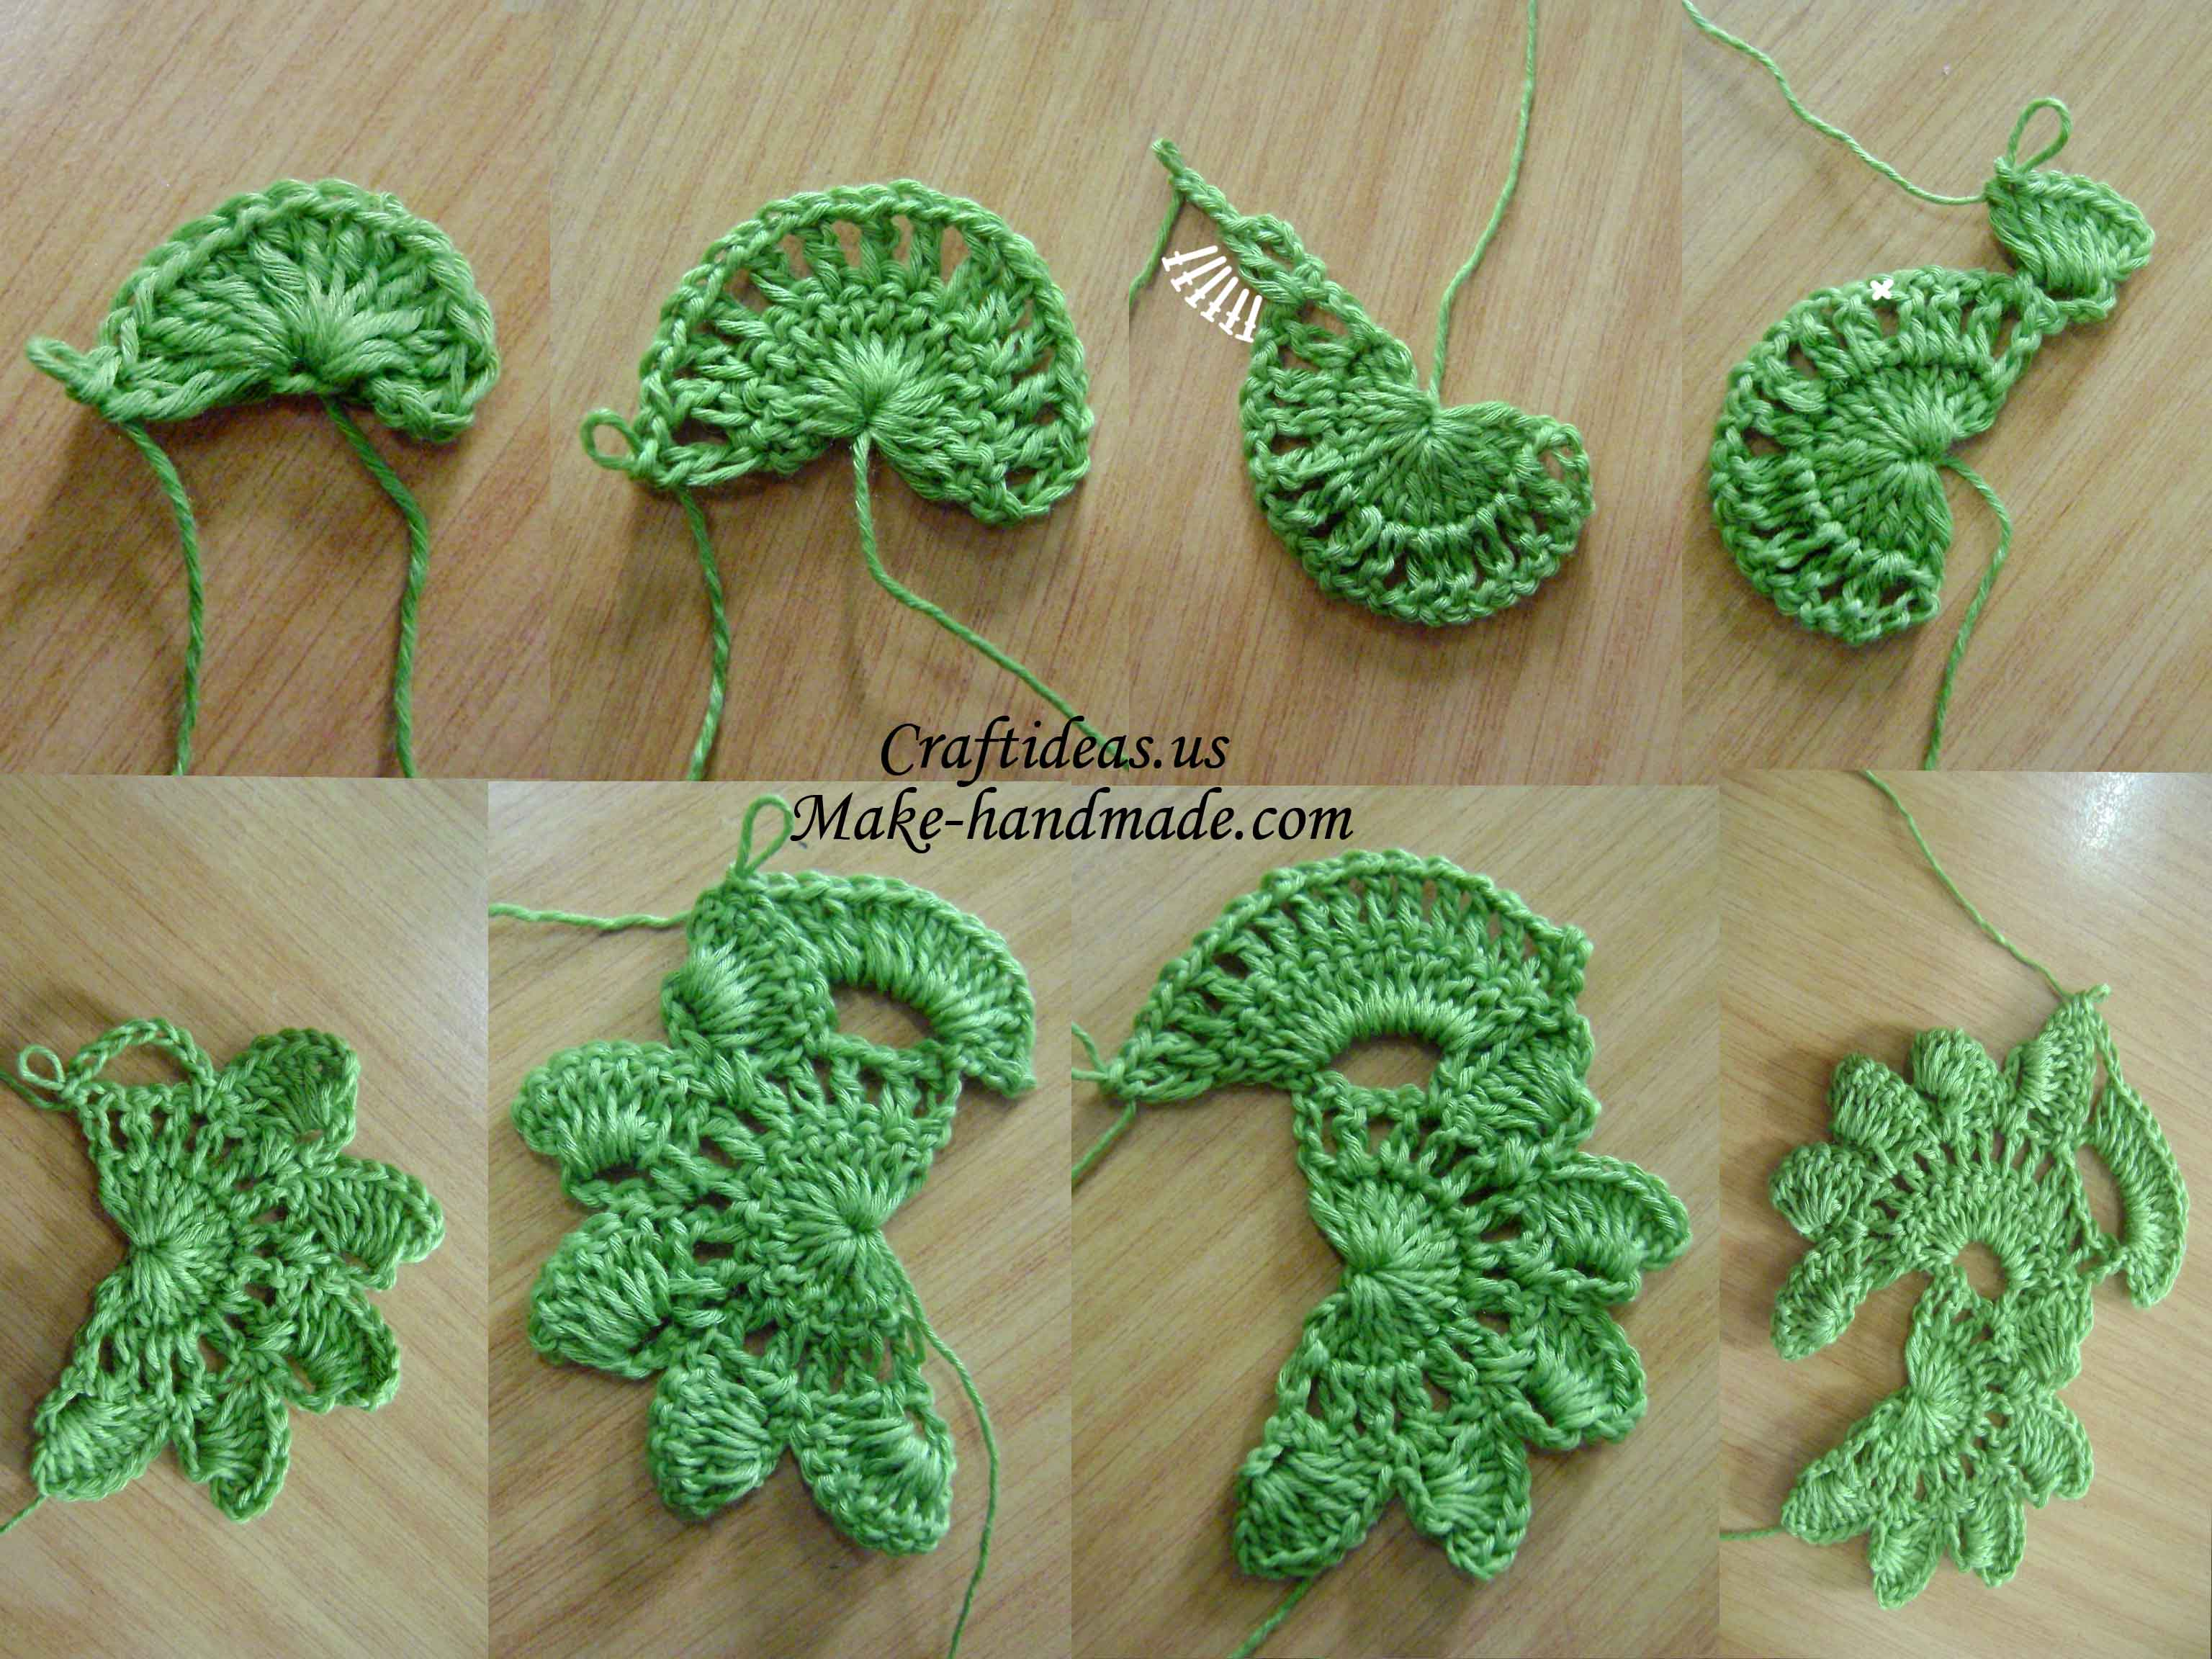 How To Crochet Tutorial Pictures : Tutorial - Craft Ideas